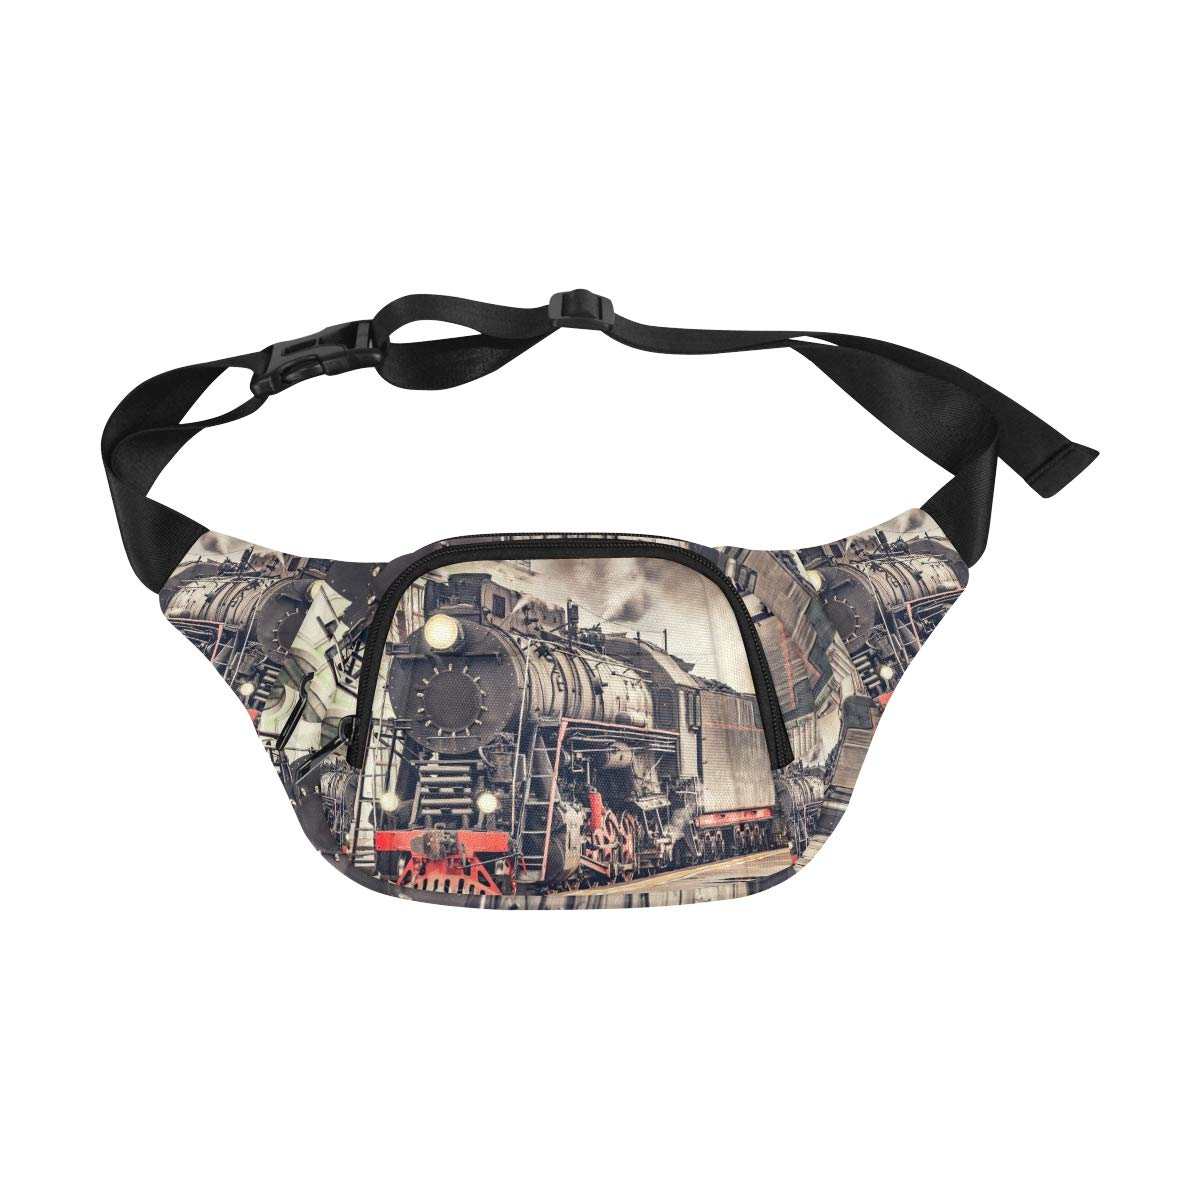 Old Steam Locomotive Old Train Fenny Packs Waist Bags Adjustable Belt Waterproof Nylon Travel Running Sport Vacation Party For Men Women Boys Girls Kids